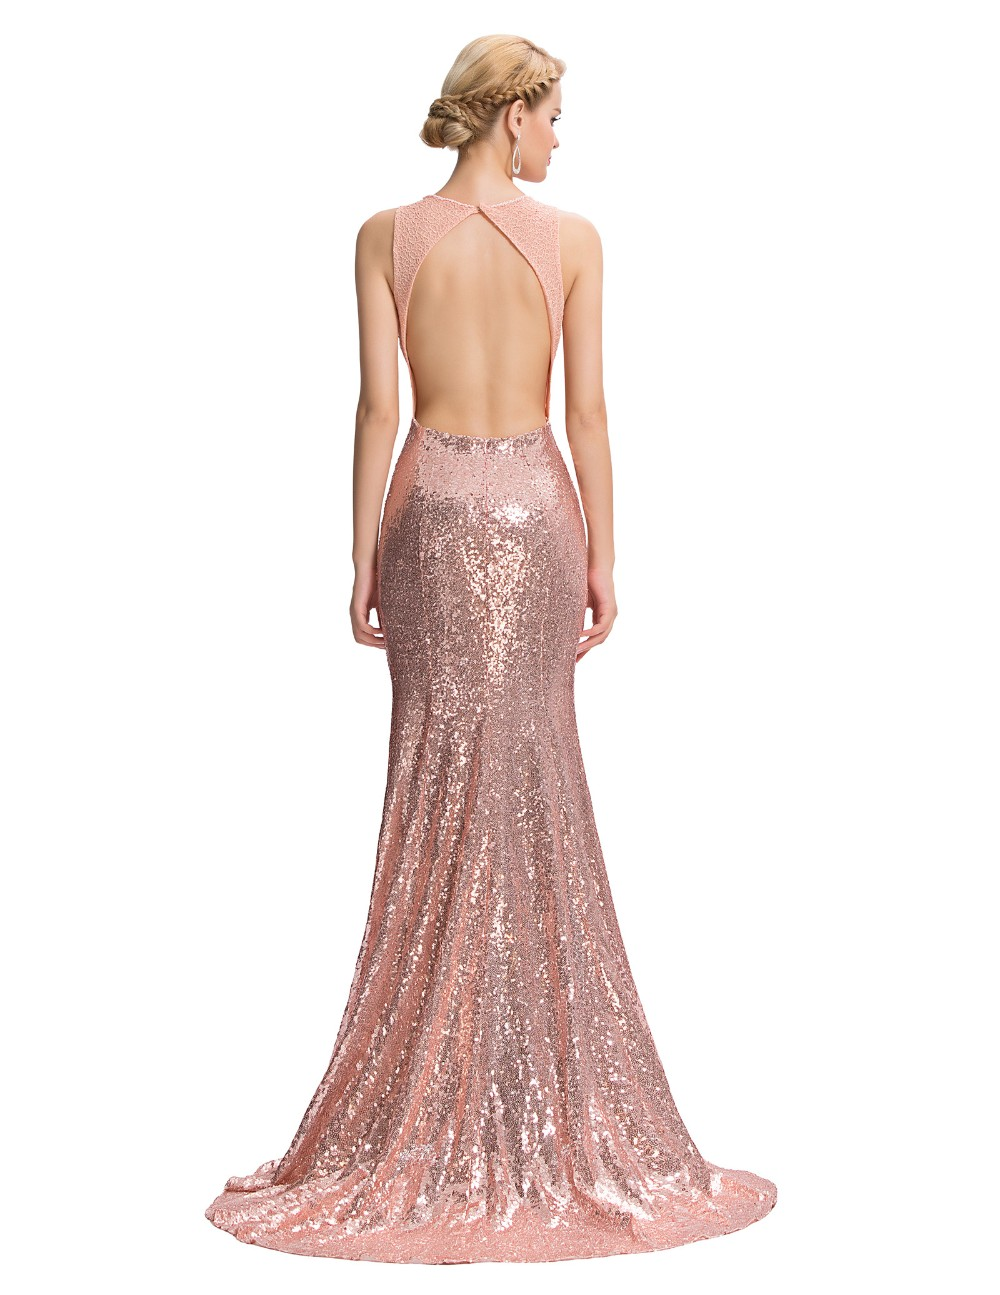 Elegant Pink Sequin Floor Length Backless Lace Mermaid Evening Dress 6